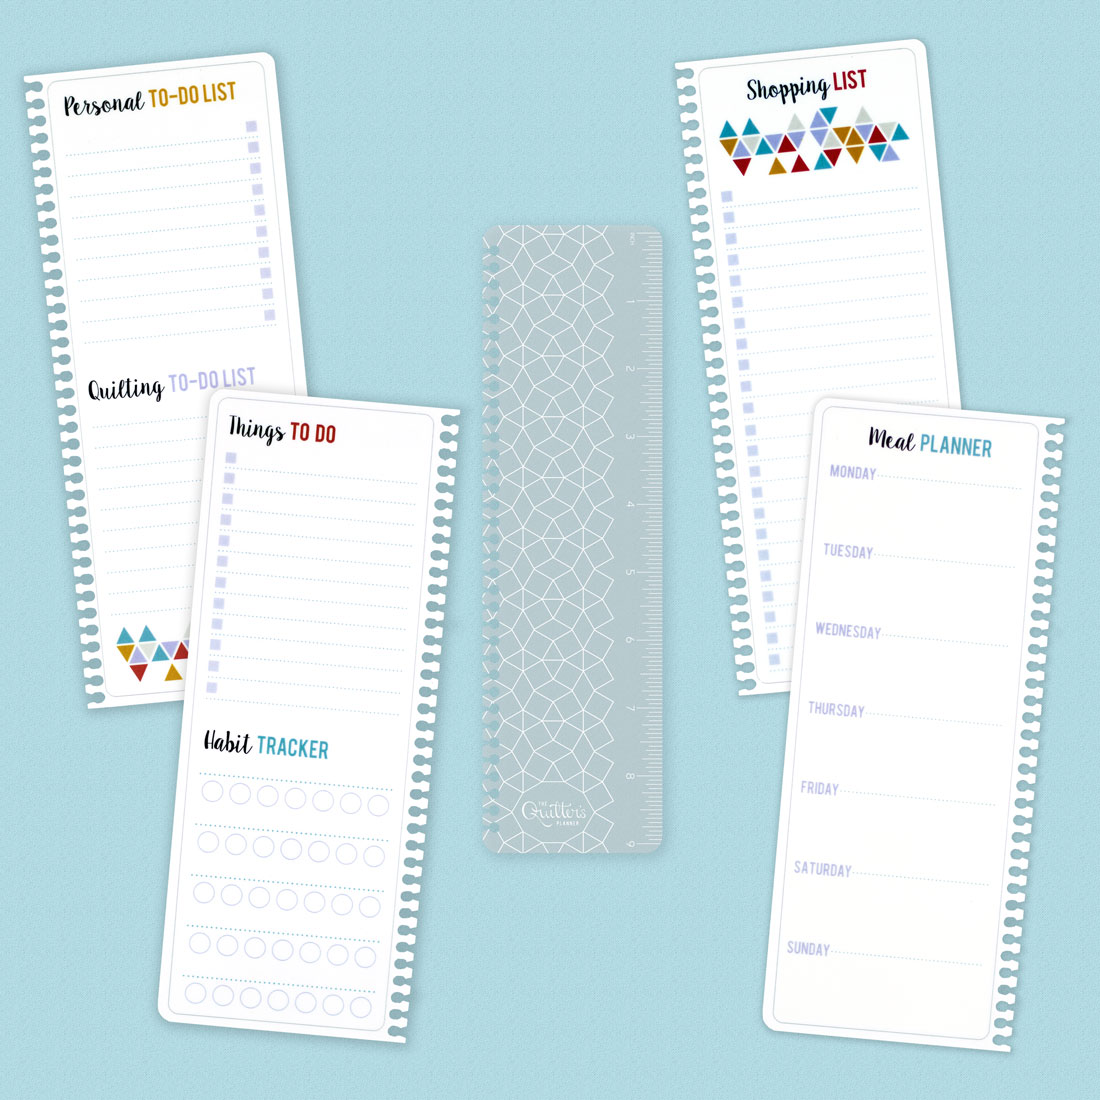 All-3-bookmarks-IN.jpg